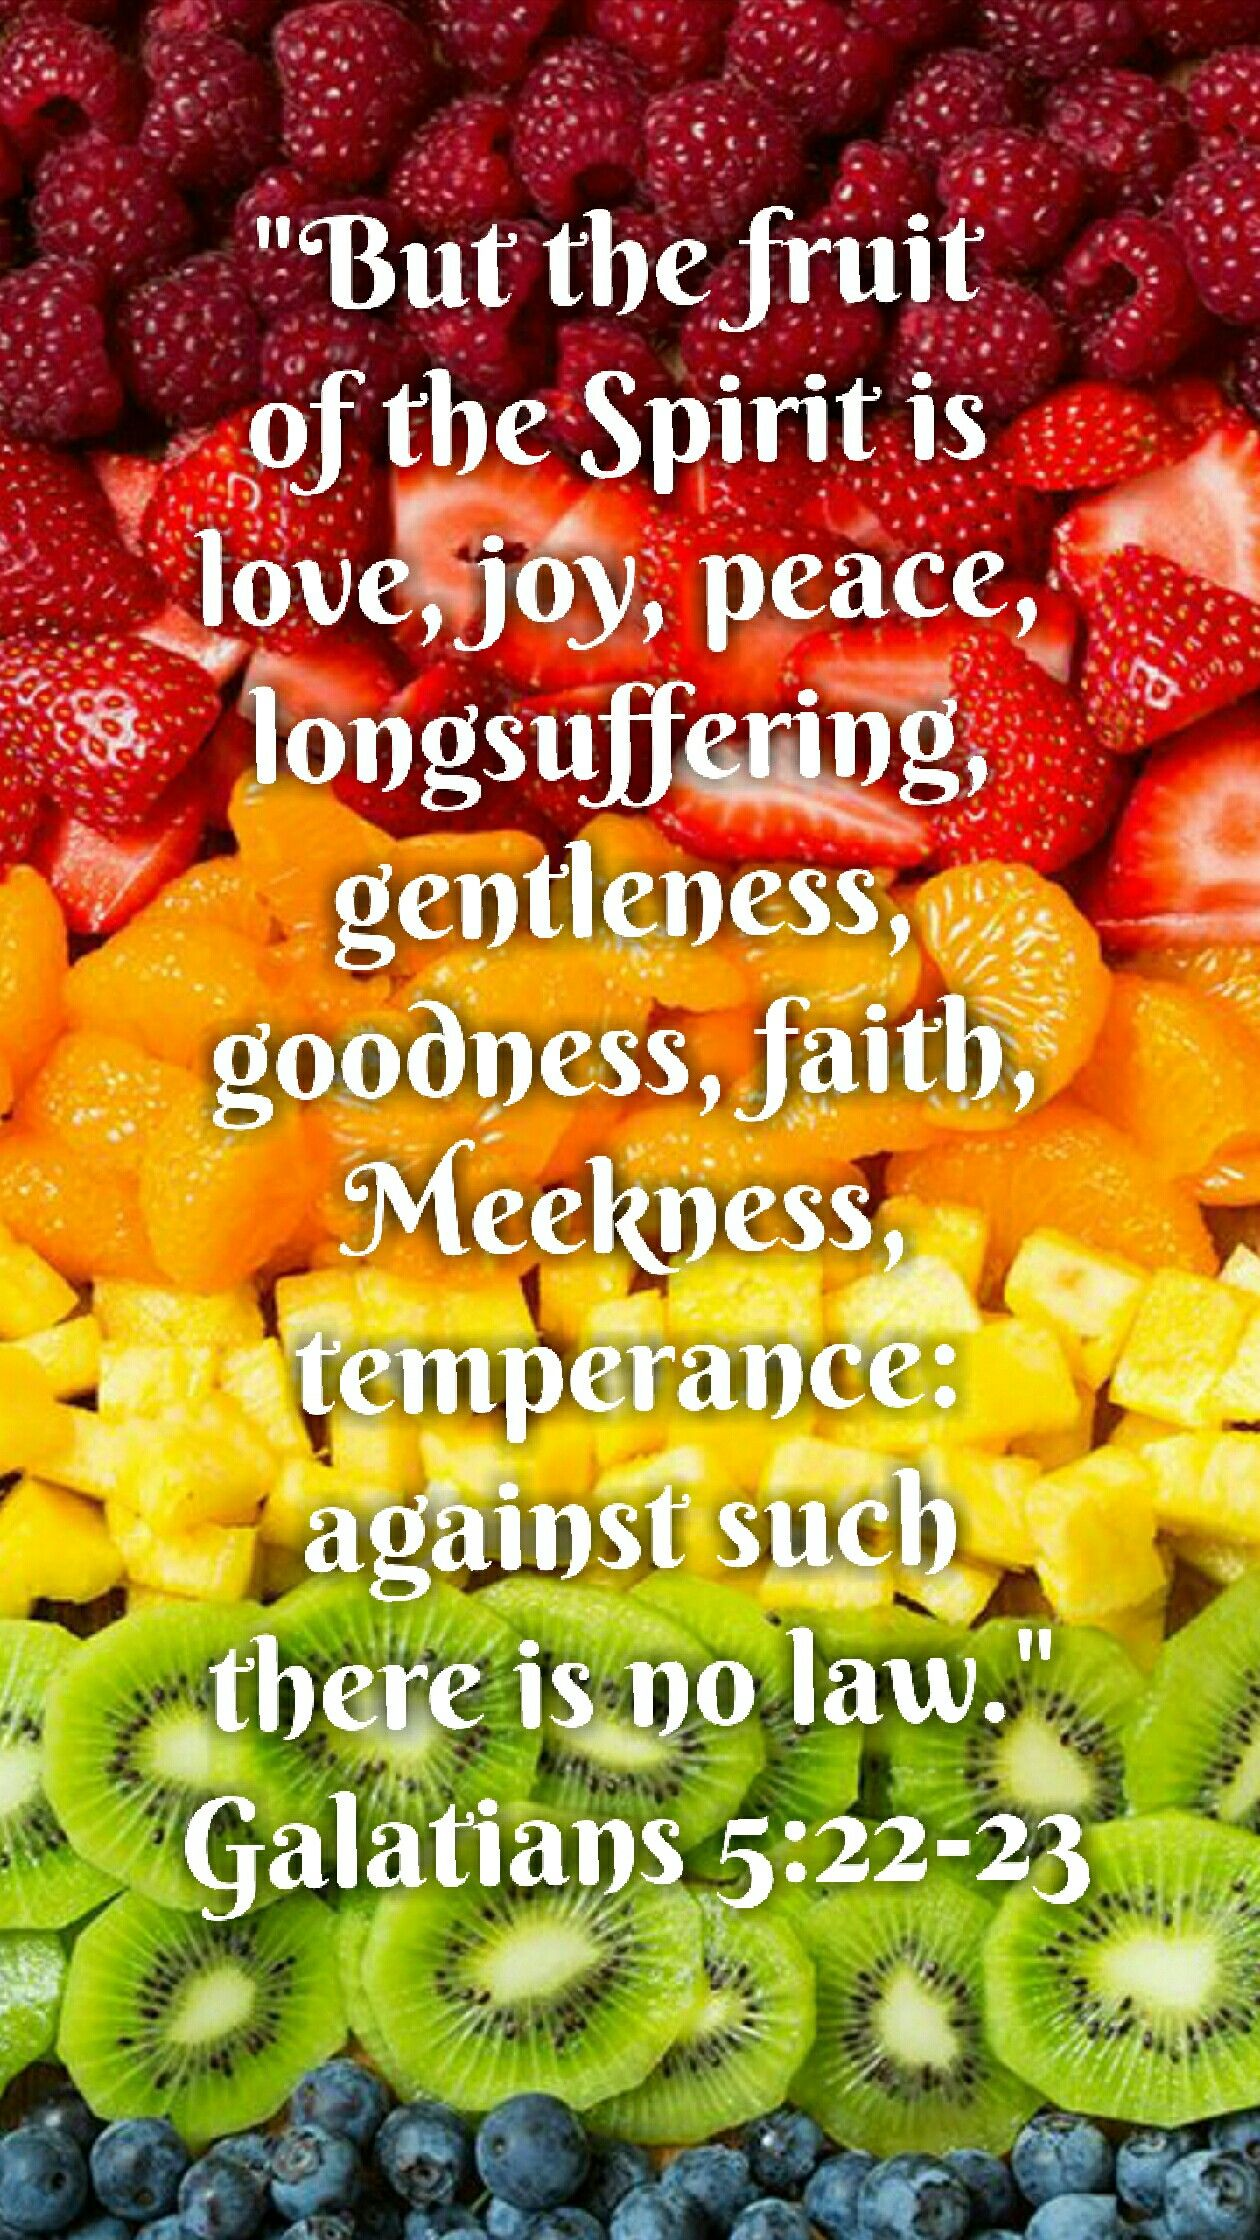 Galatians 5 22 23 Kjv But The Fruit Of The Spirit Is Love Joy Peace Longsuffering Gentleness Goodness Faith Meekn Fruit Of The Spirit New Fruit Fruit